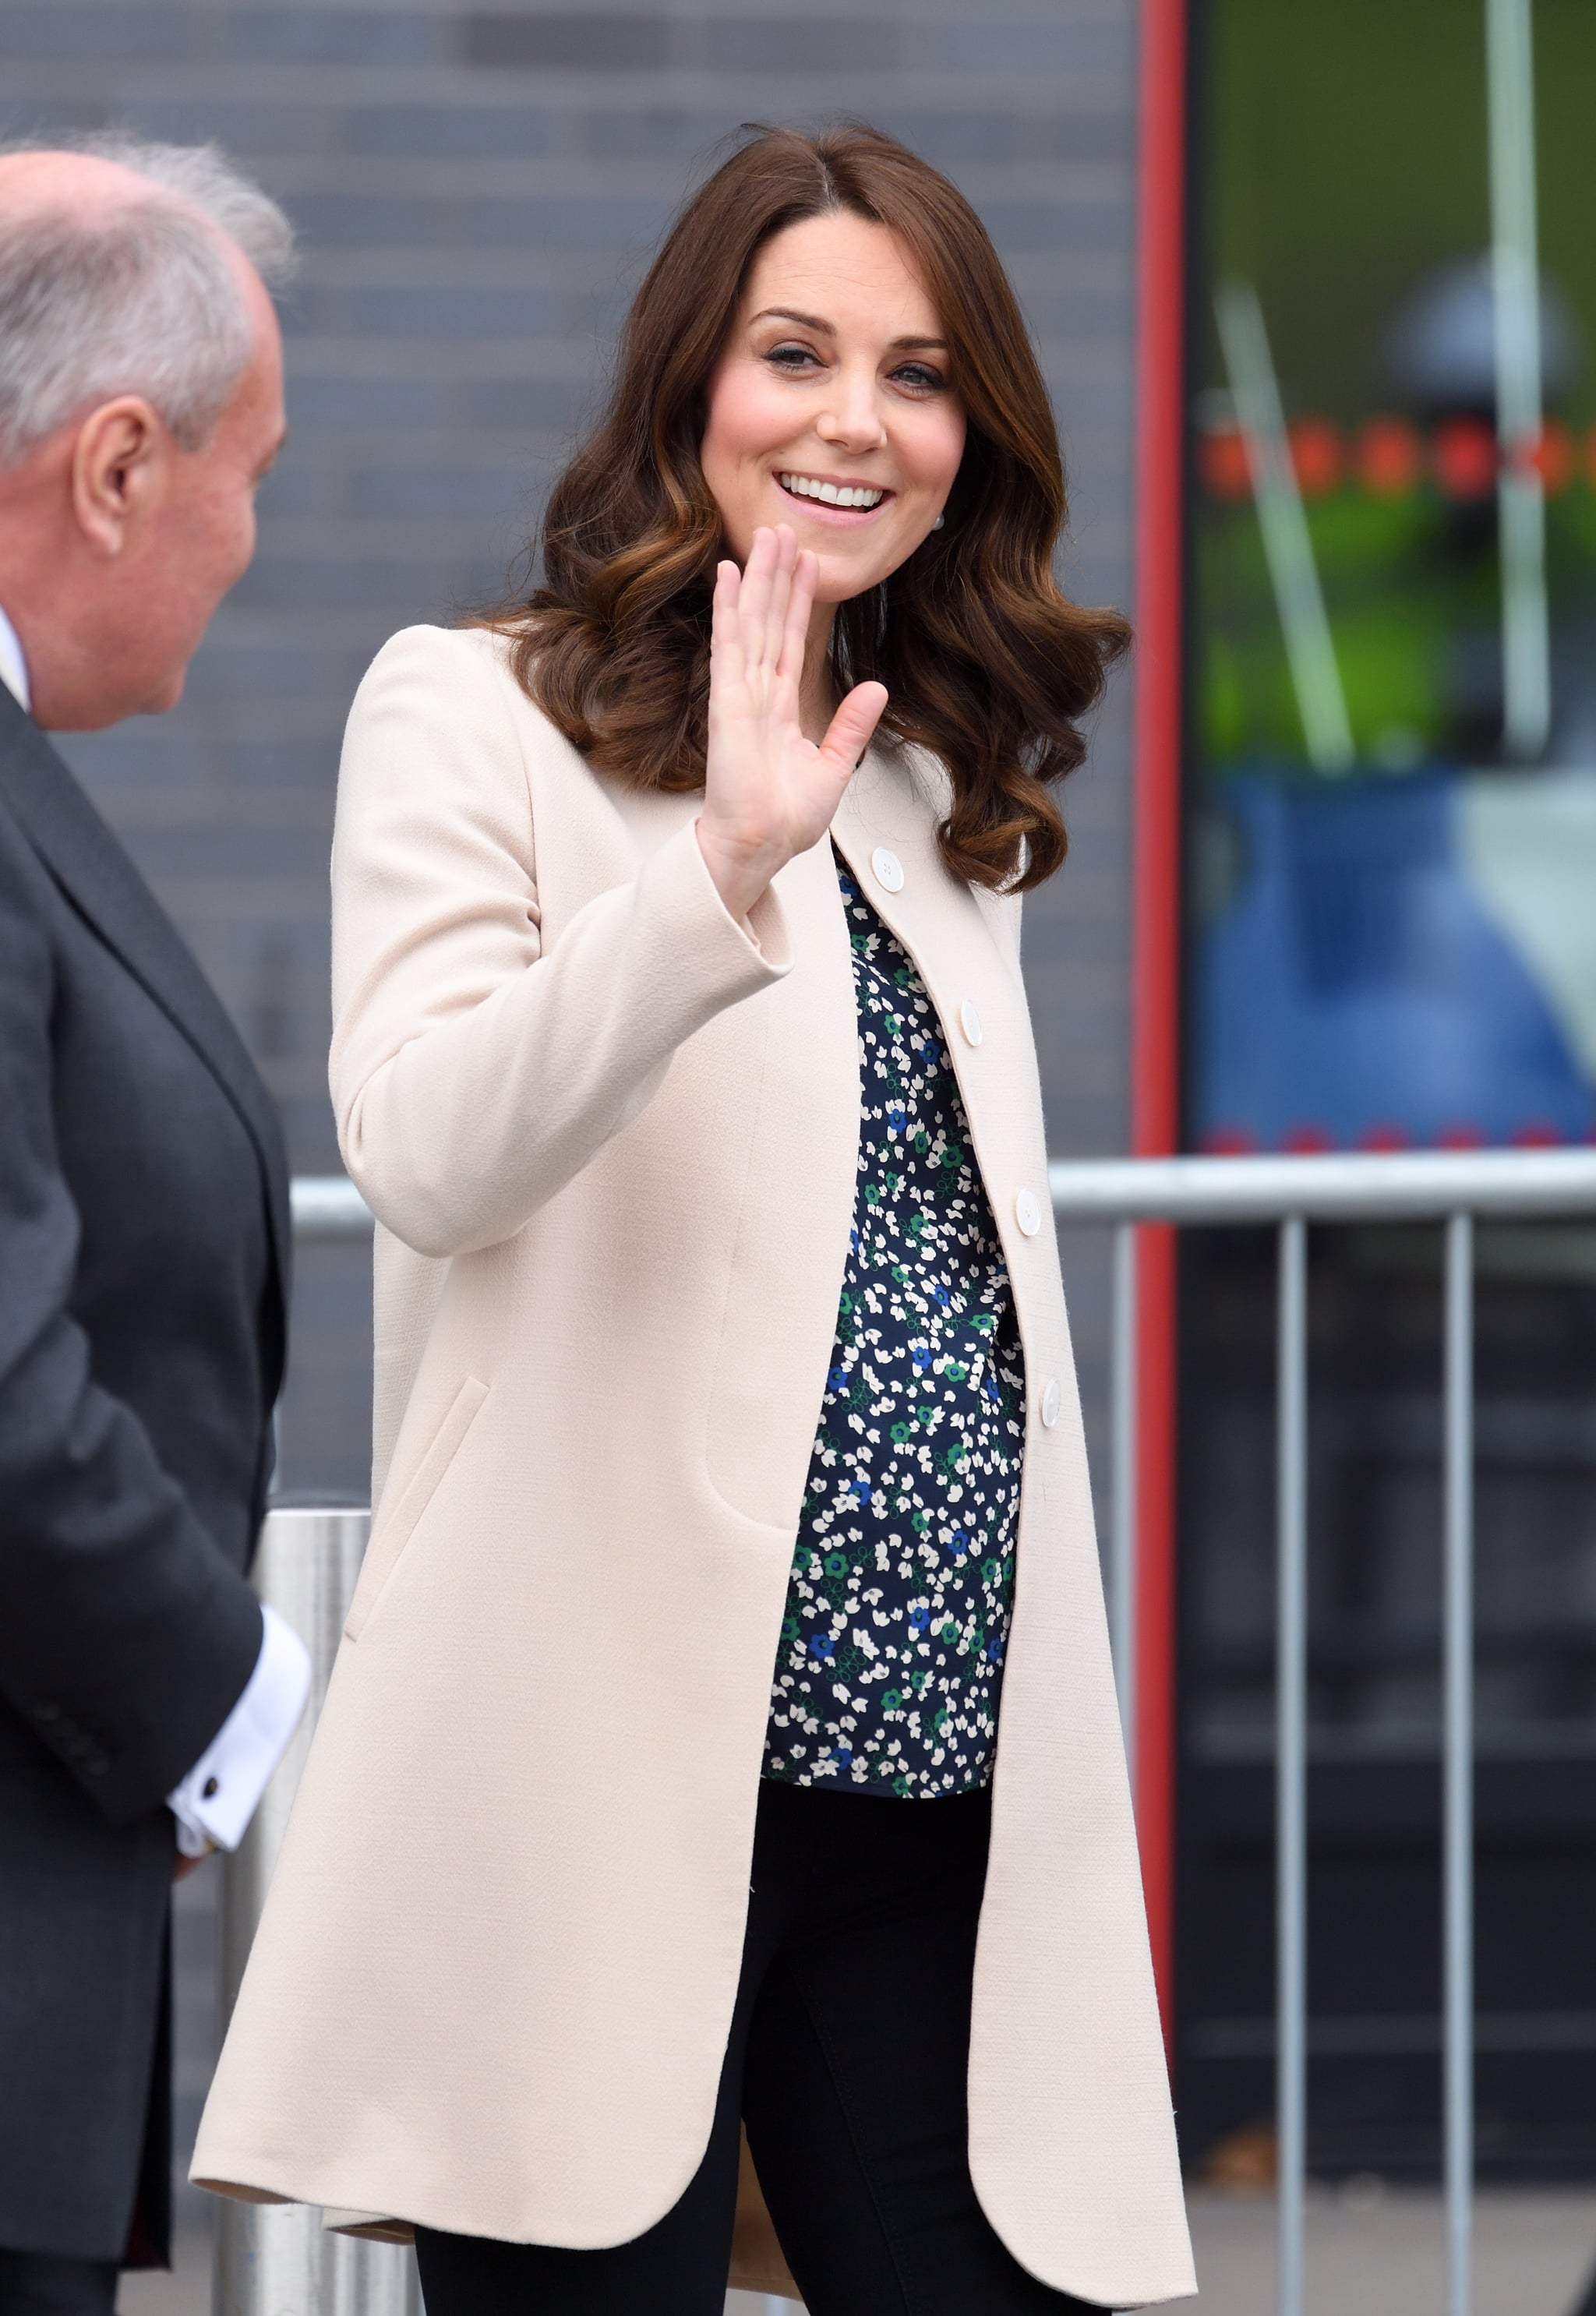 LONDON, ENGLAND - MARCH 22:  Catherine, Duchess of Cambridge visits SportsAid to undertake engagements celebrating the Commonwealth at the Copperbox Arena on March 22, 2018 in London, England.  (Photo by Karwai Tang/WireImage)